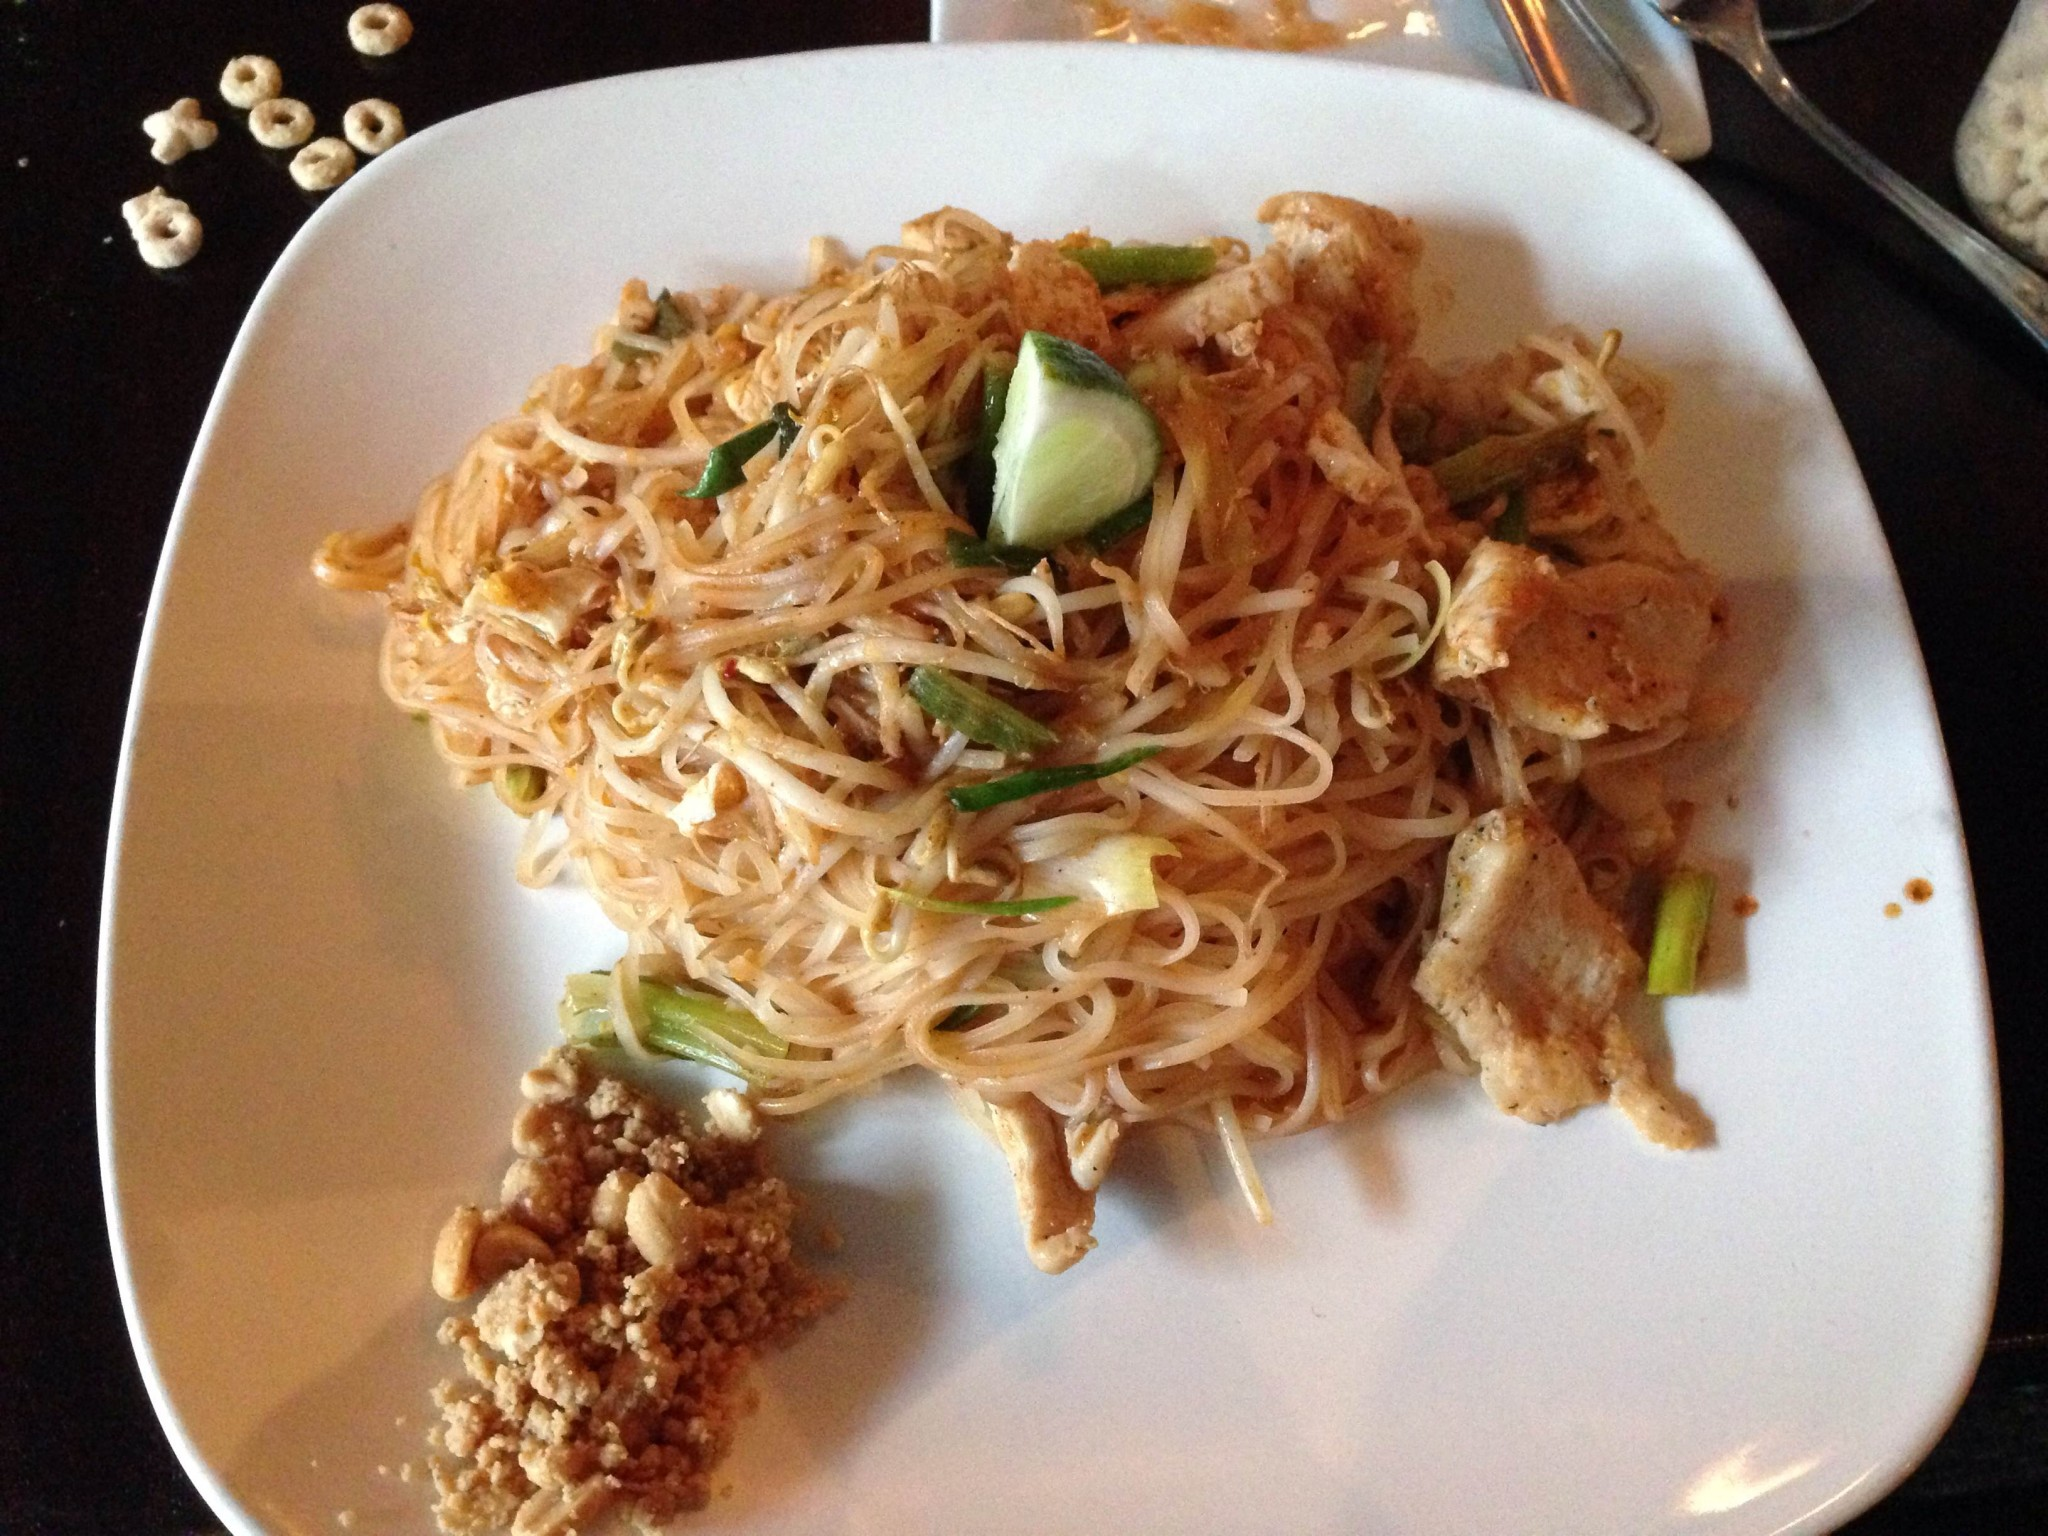 Aroy thai fusion surprising kid friendly but only early for Aroy thai cuisine